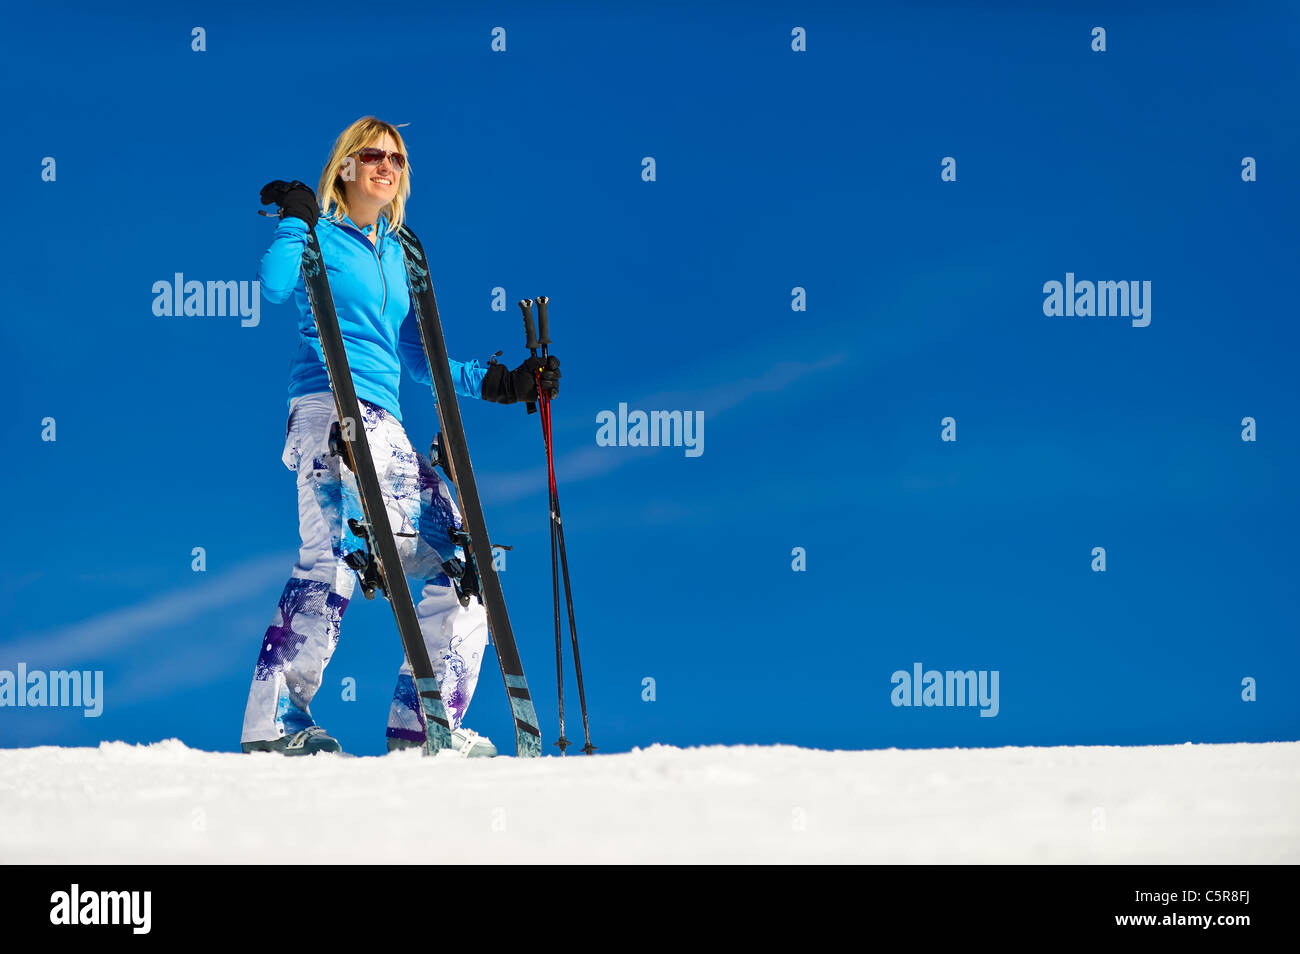 A woman enjoying herself stands on the ski slope with her skis. - Stock Image